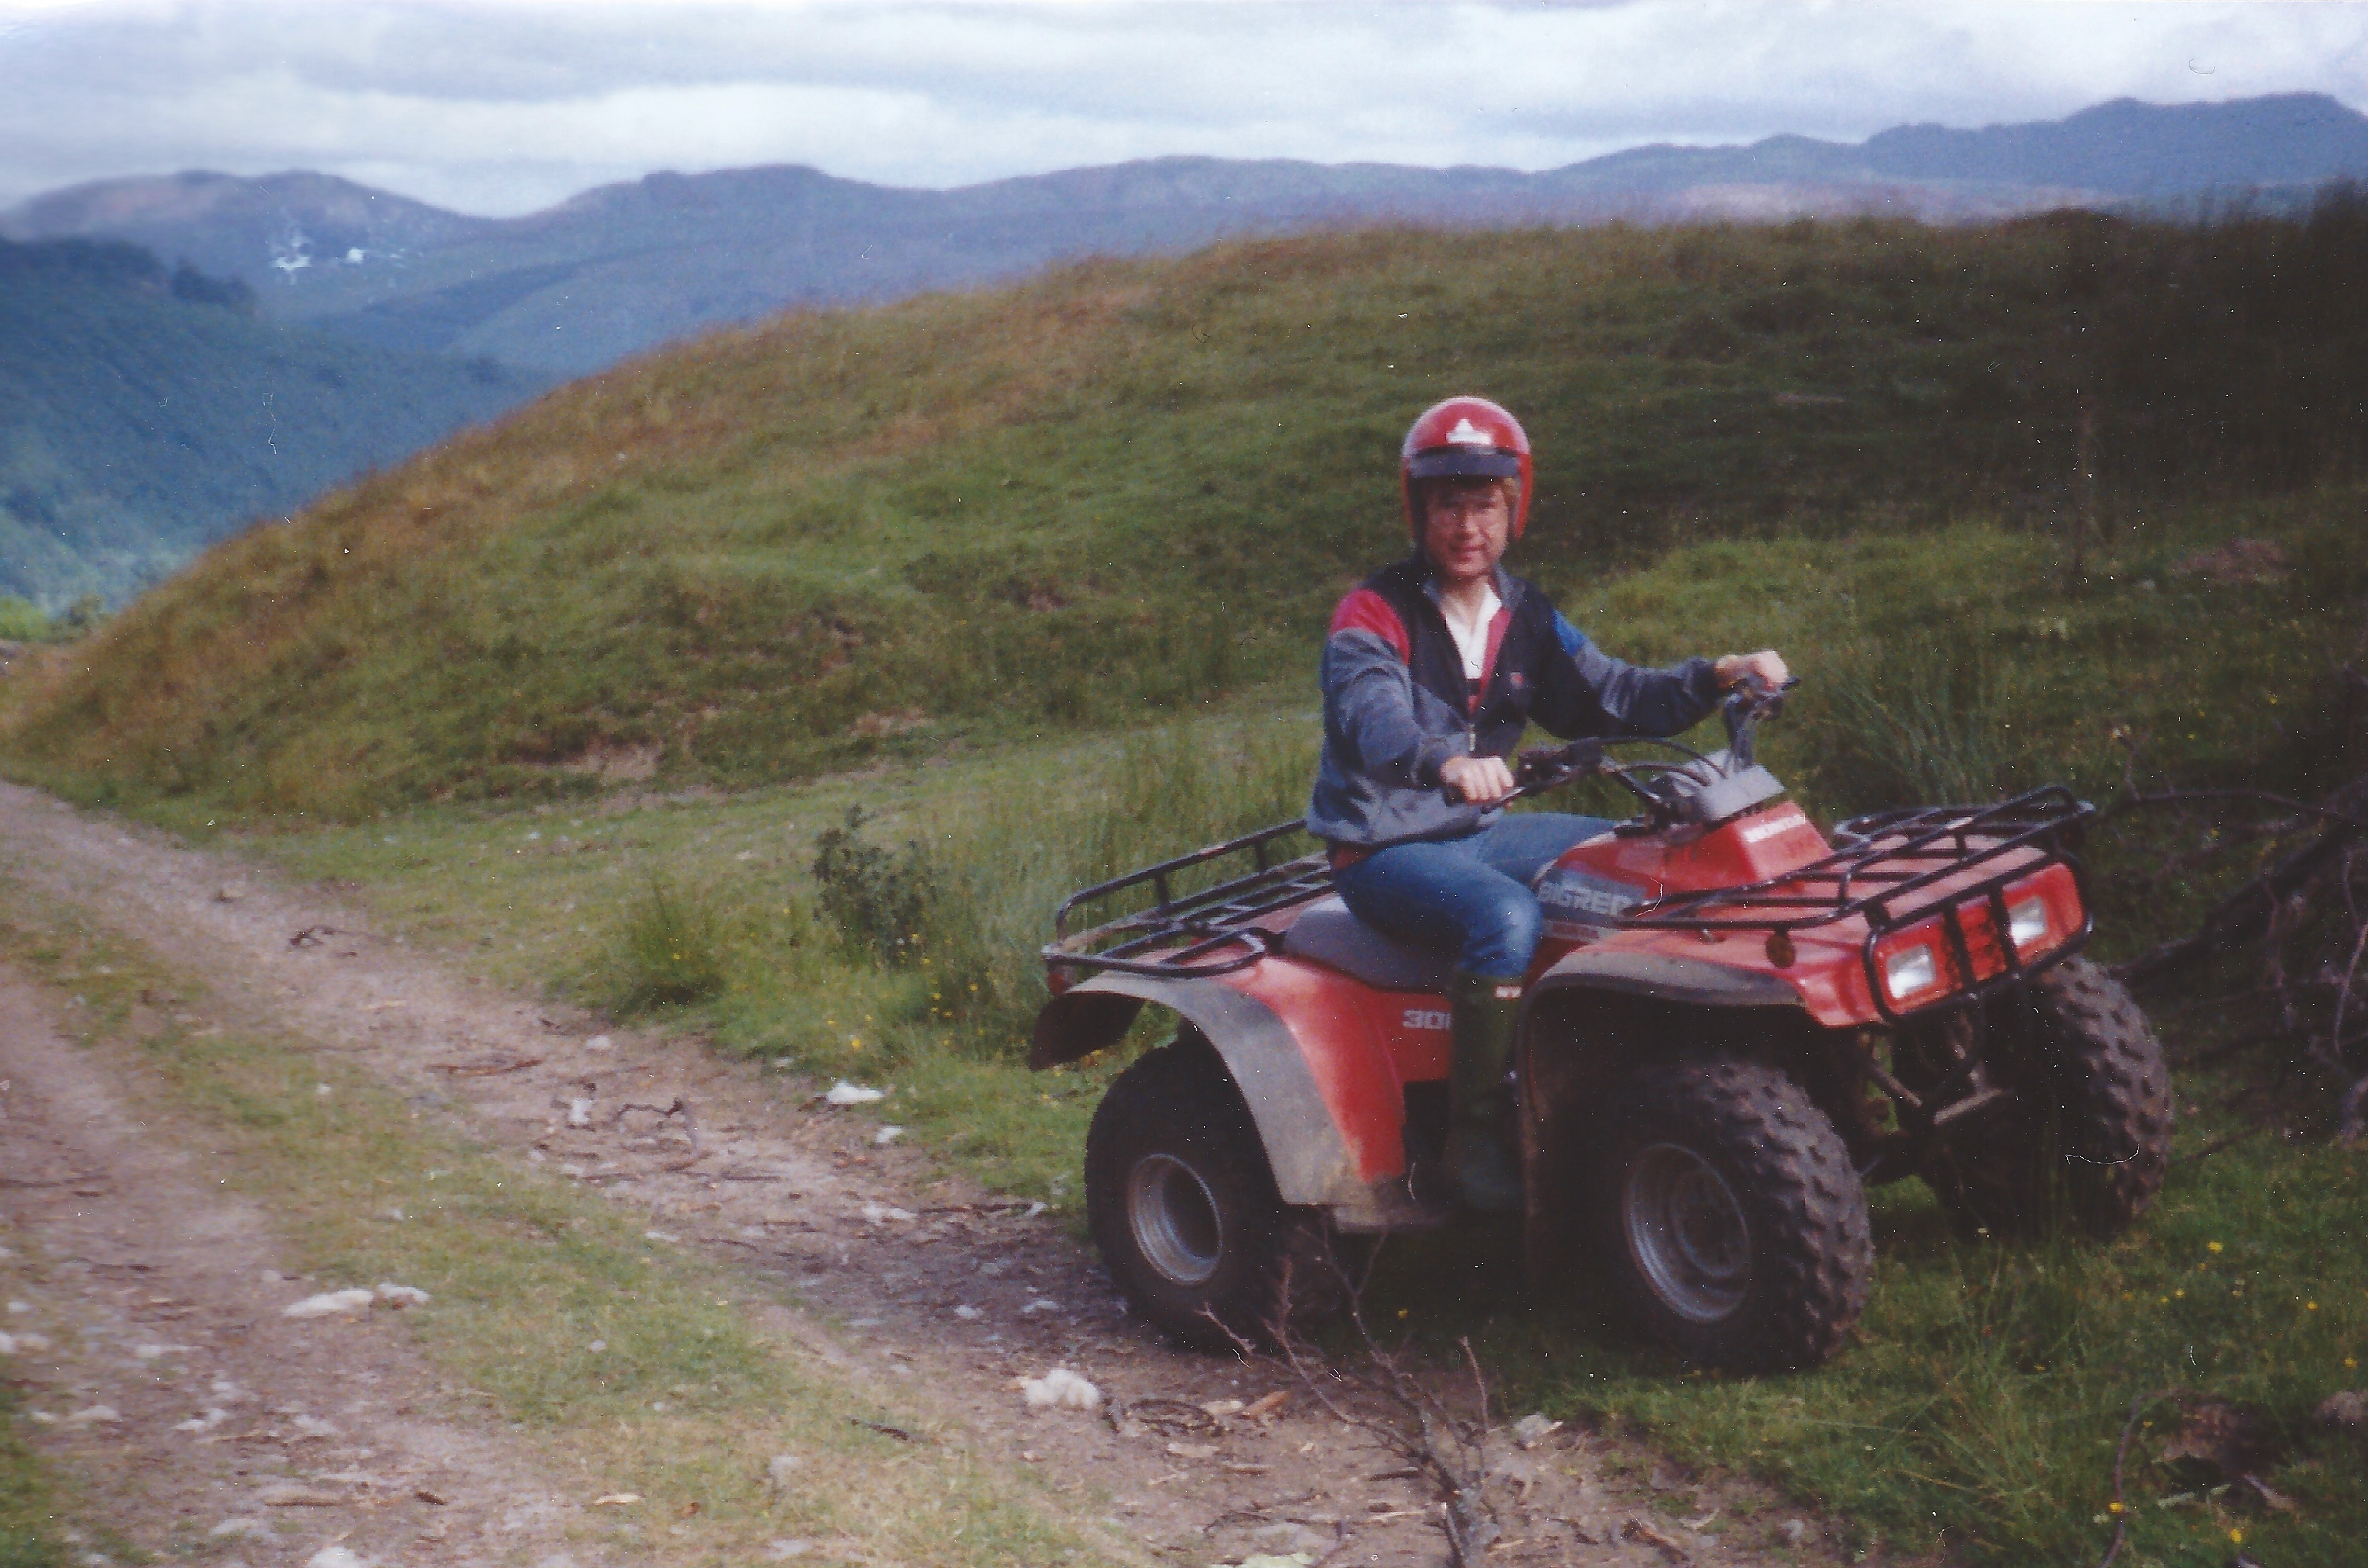 The author sat on a red Honda 300 quad bike high in rolling grass covered hills in the Welsh countryside. The bike is parked just off a dusty dirt track headed to a small pass. Vince is wearing a grey shell style suit top and blue jeans, green Hunter Wellingtons and a red open faced helmet with black peak